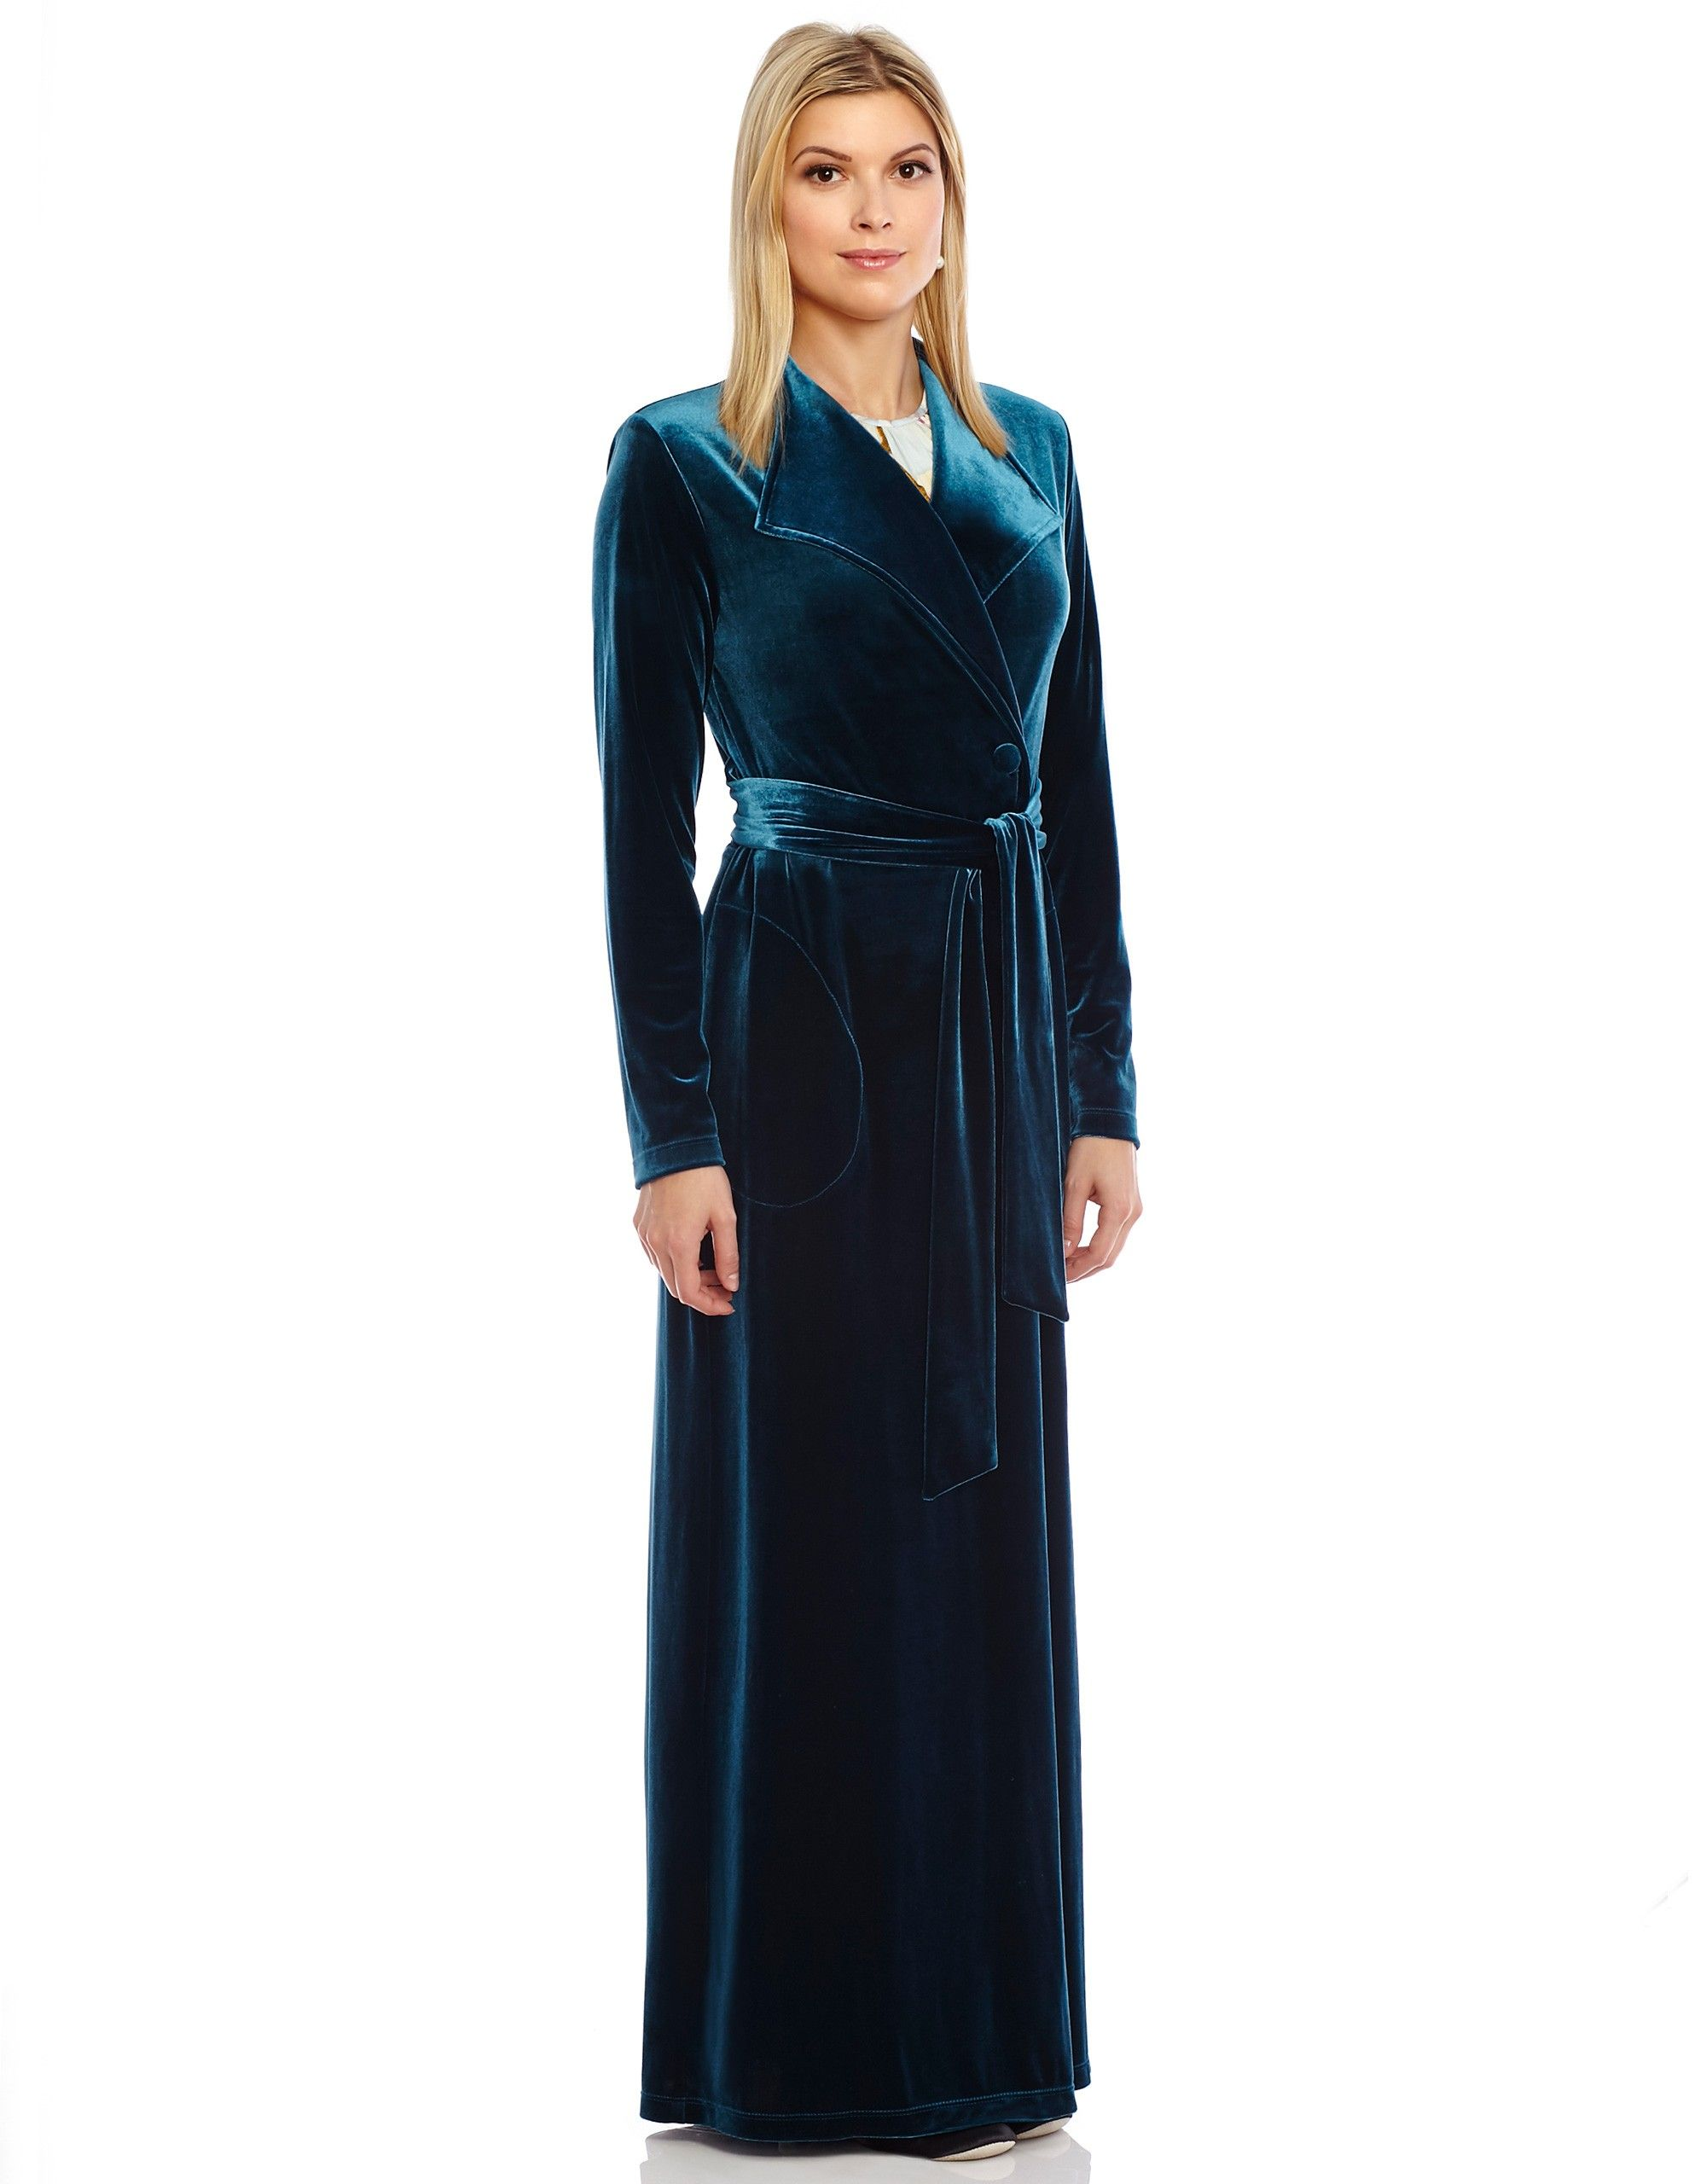 9292c00b85e Velvet Wrap Robe with Shirred Back - Morning Robes - Robes and Maxis at The Lingerie  Shop New York